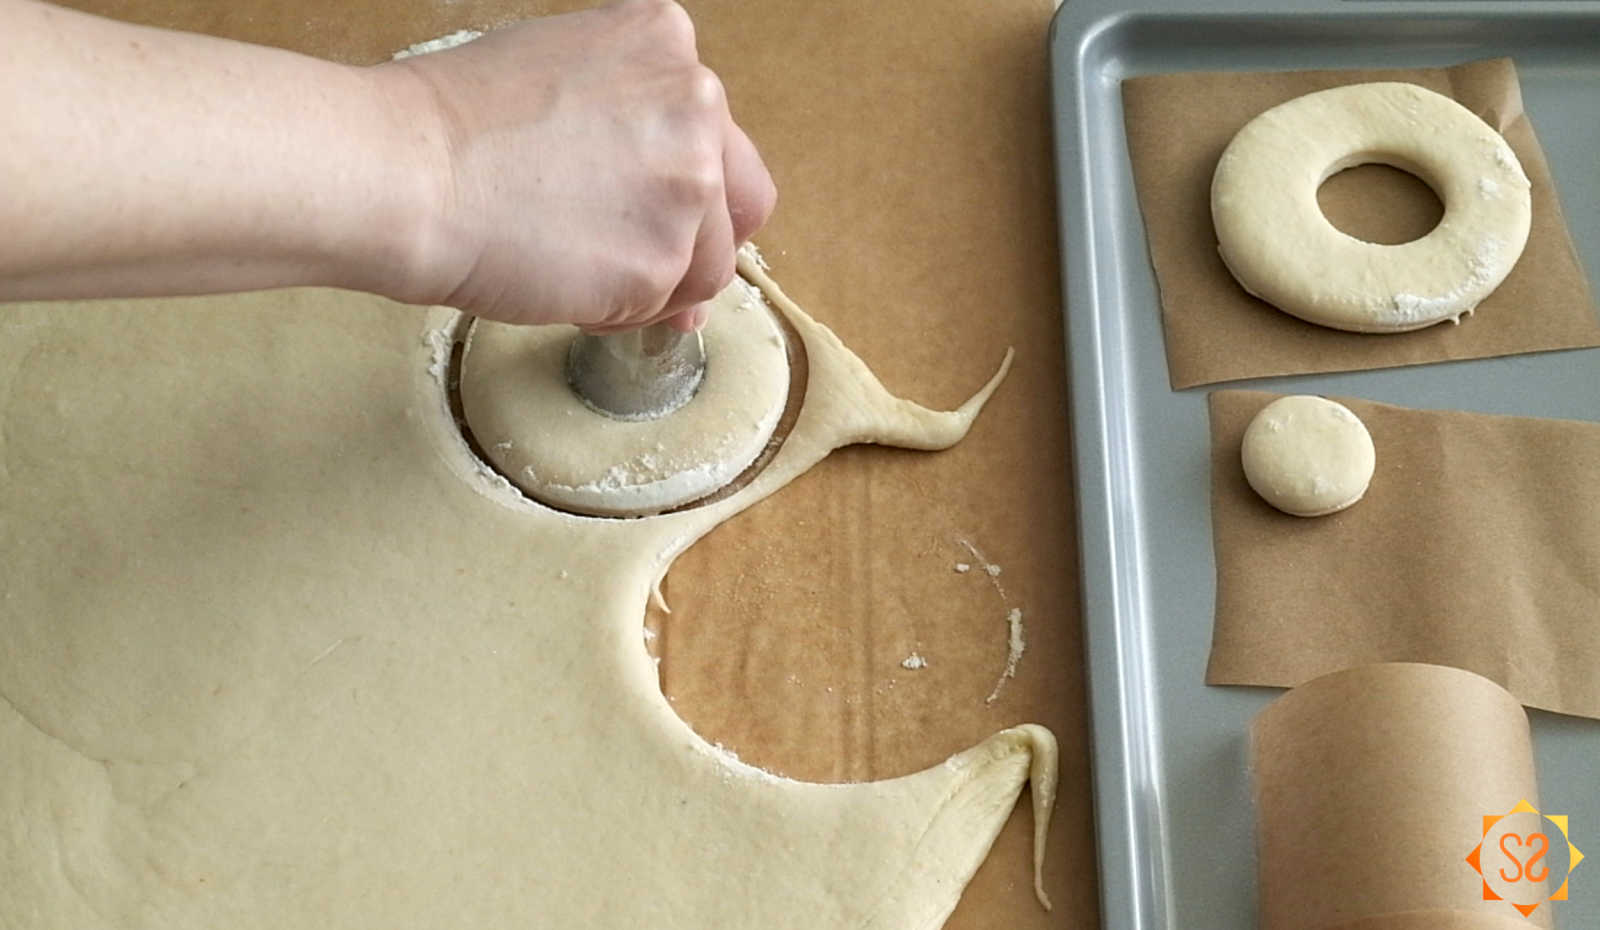 Hand cutting out a donut hole from dough, with one donut and one donut hole already cut on a baking tray on the side